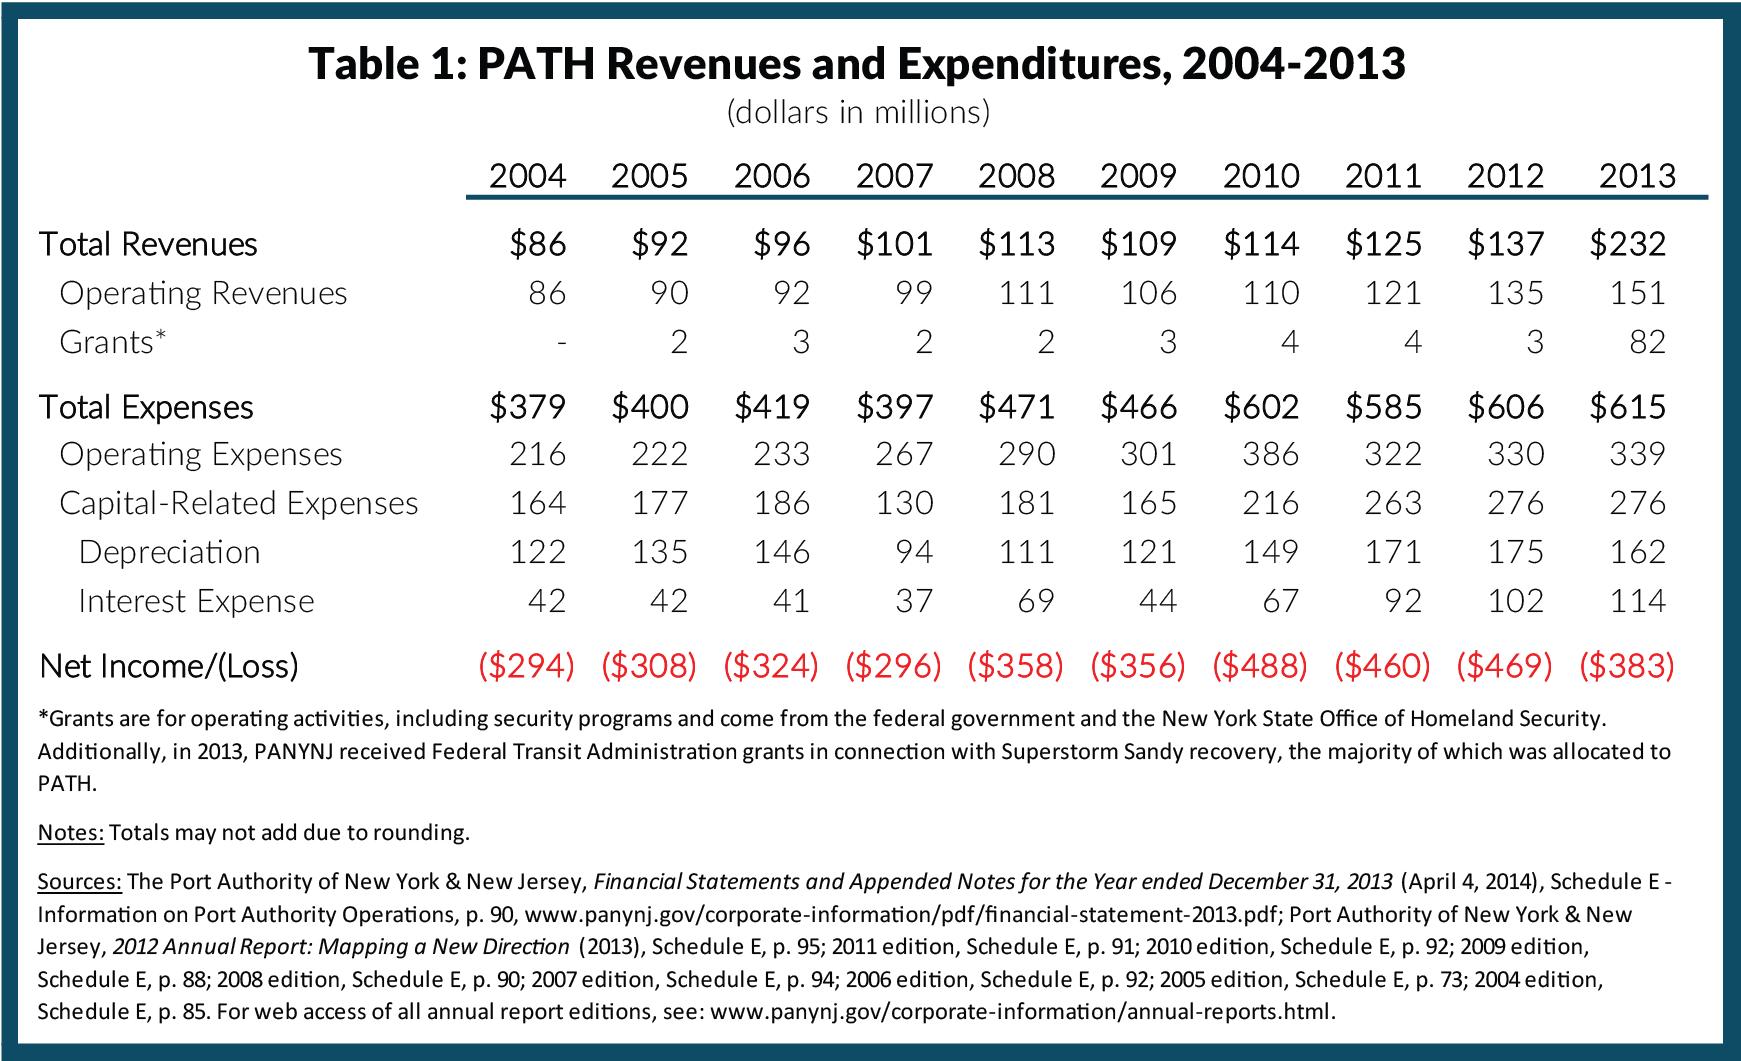 Table 1: PATH Revenues and Expenditures, 2004-2013